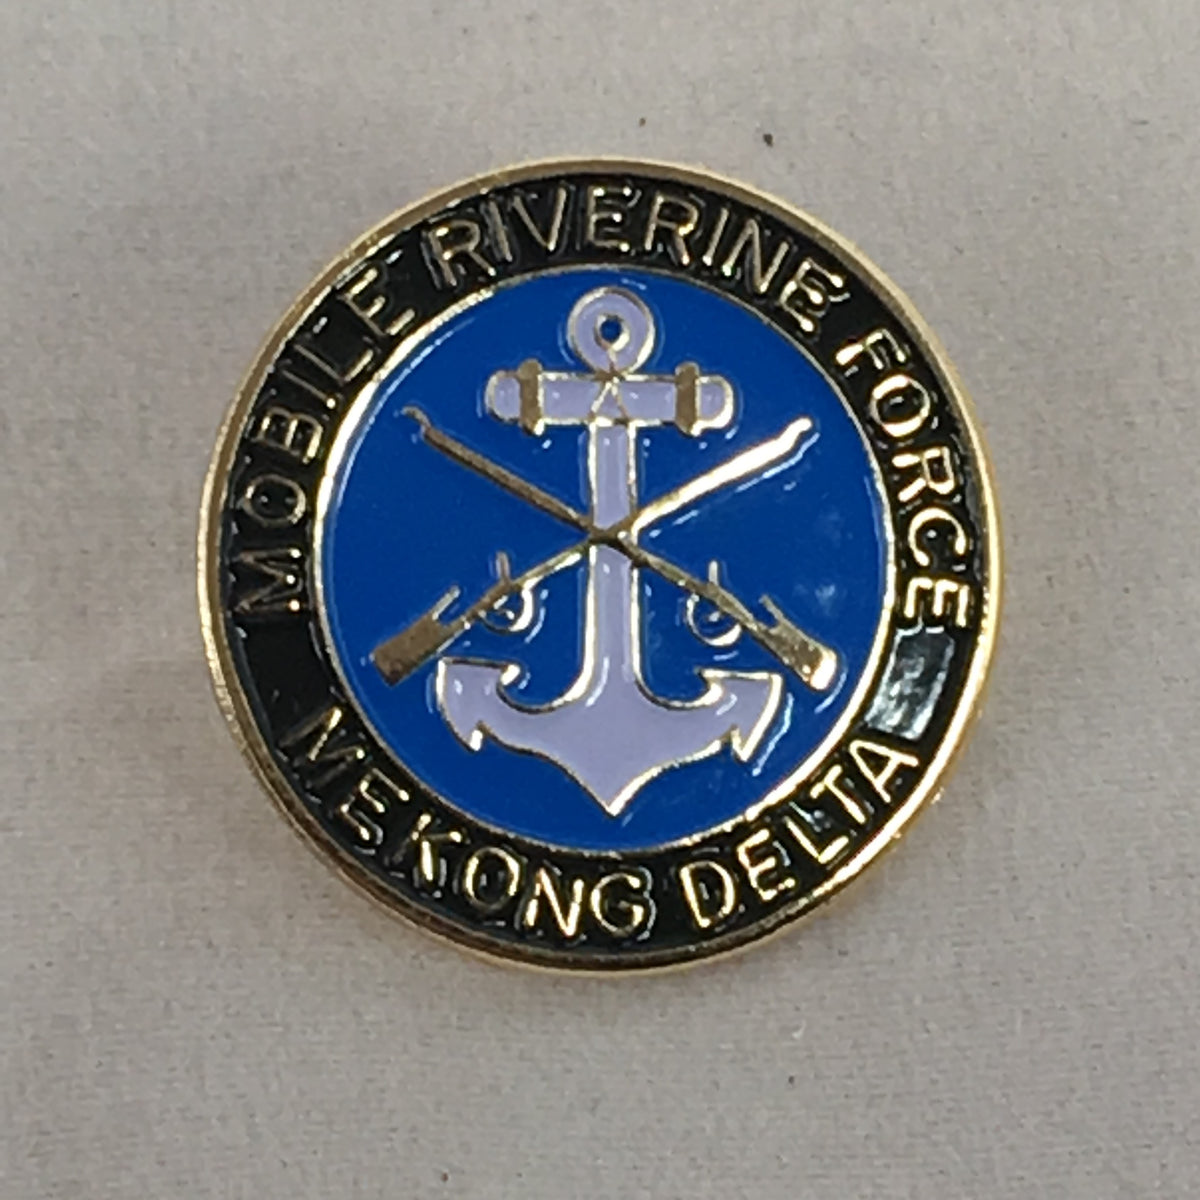 Navy Riverine Force Mekong Delta Pin